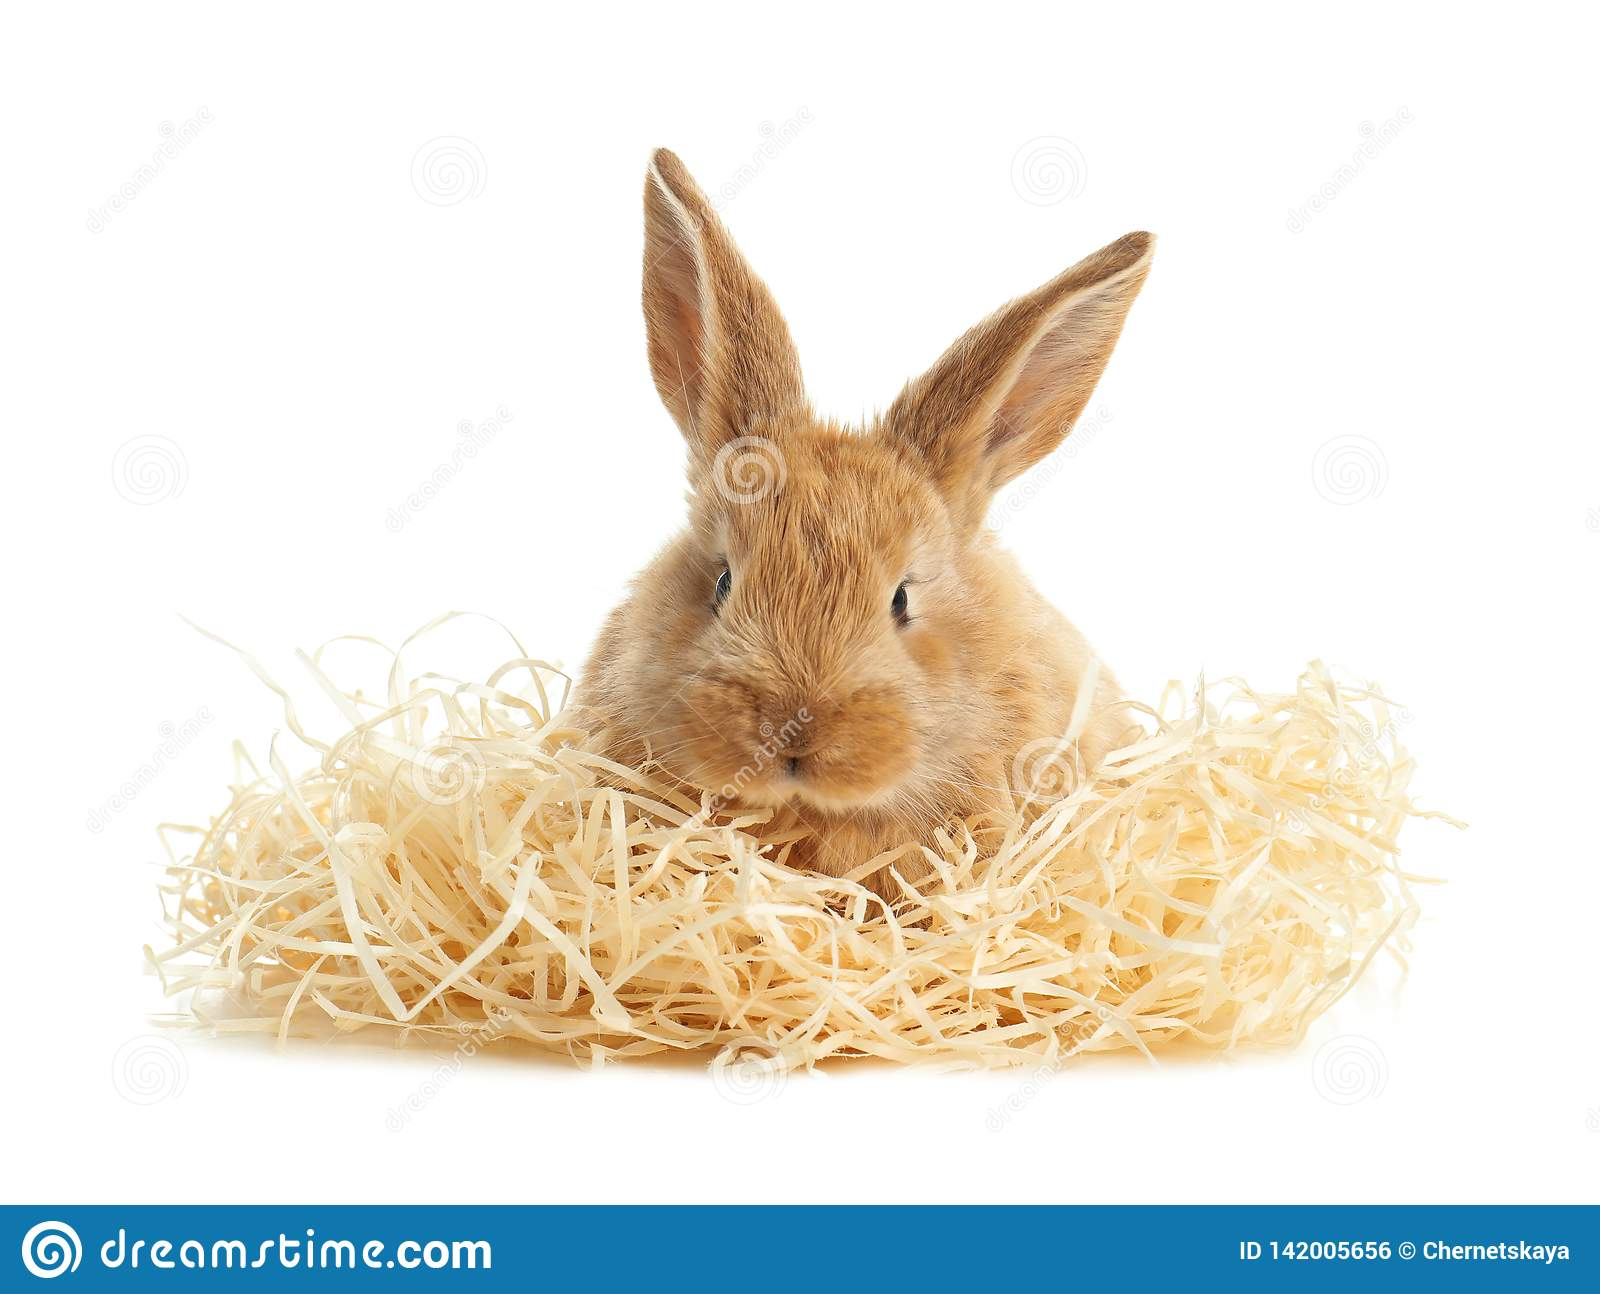 Adorable furry Easter bunny with decorative straw on white